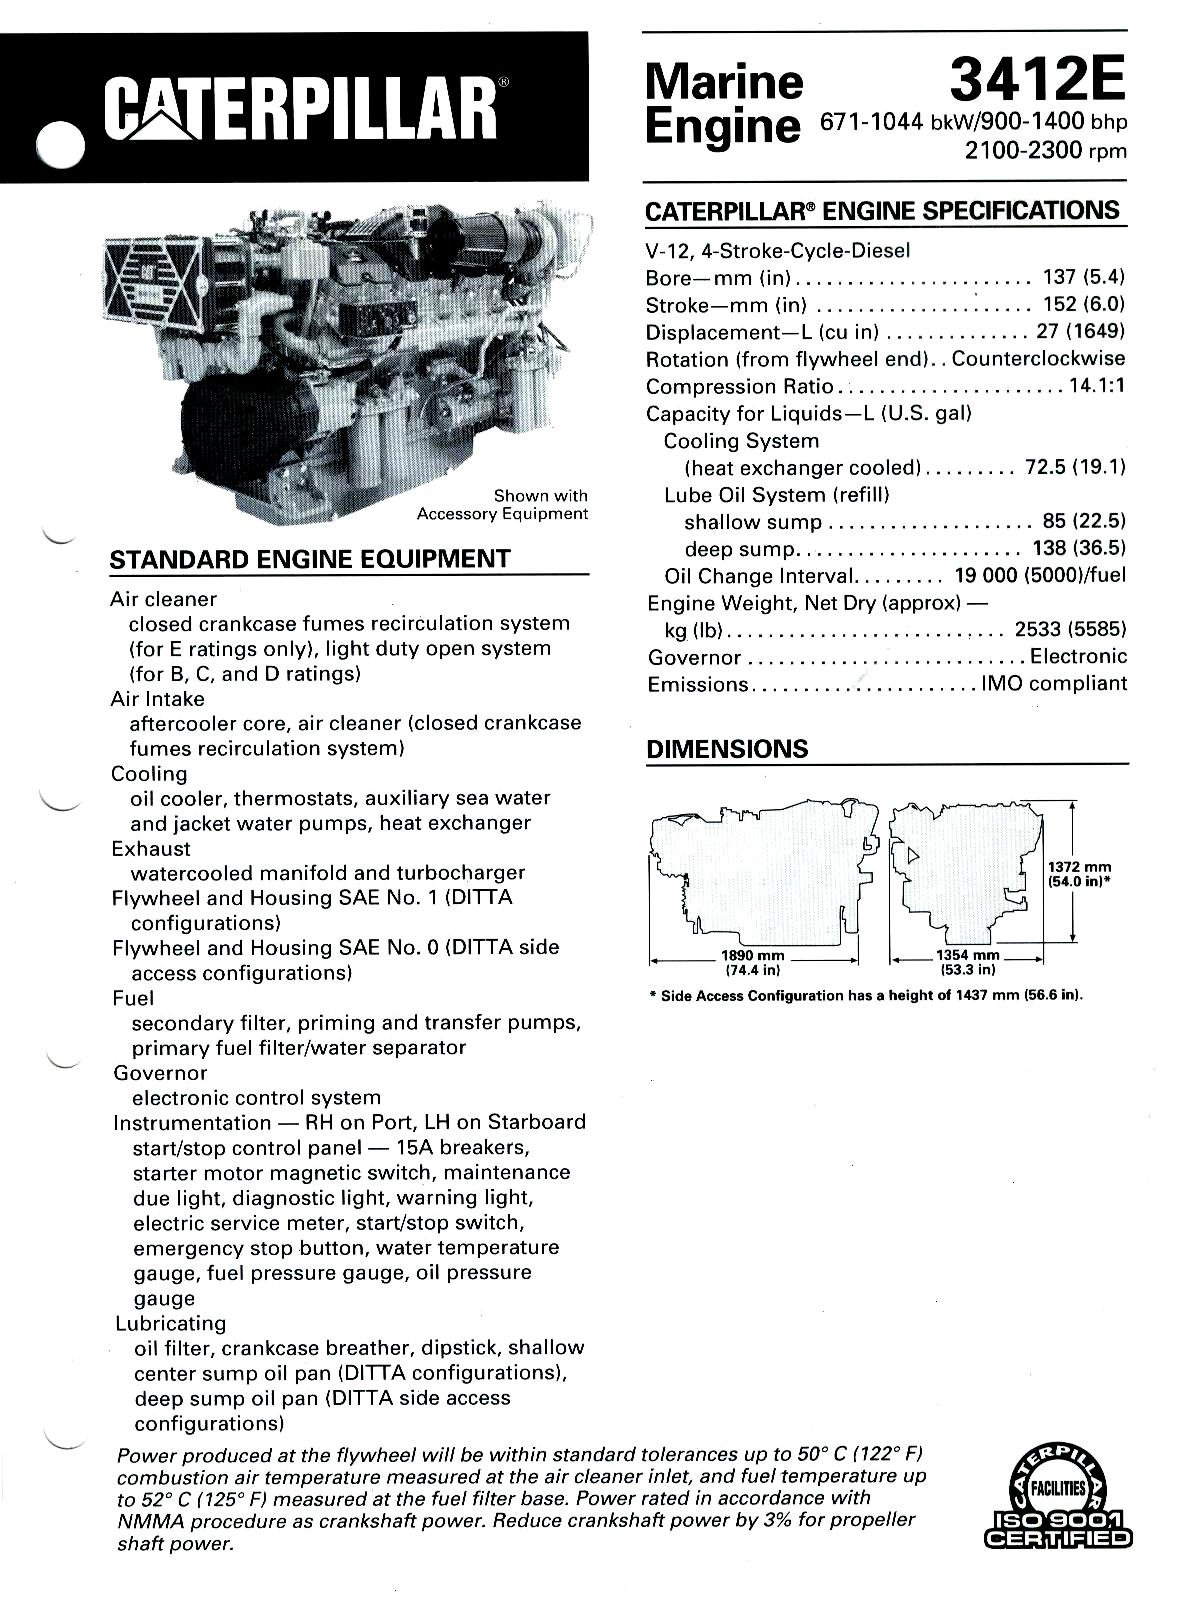 3208 cat engine manual